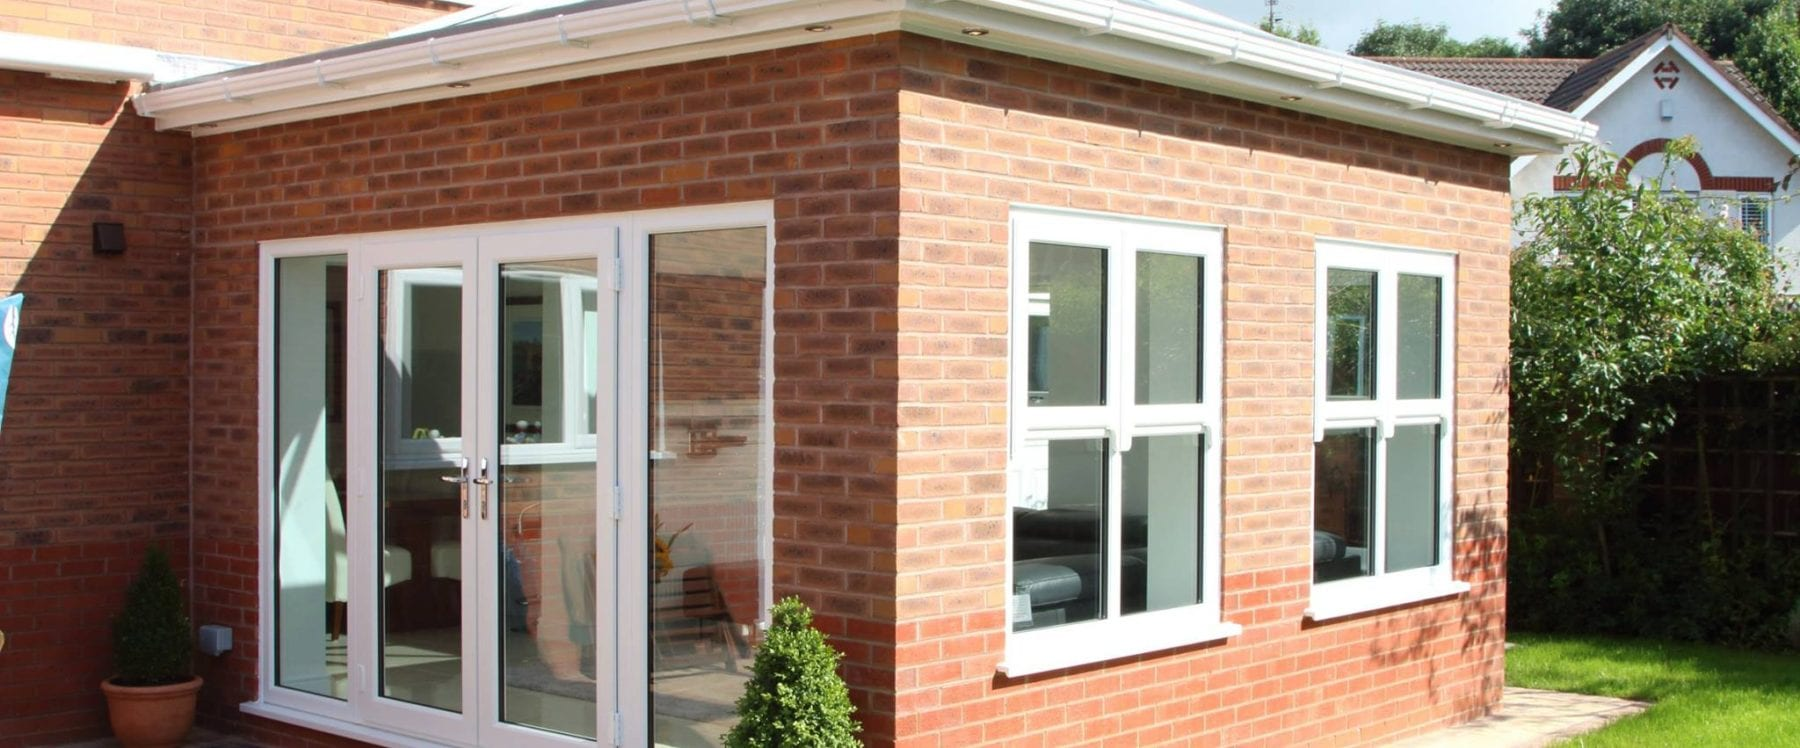 Extension Install in Speke